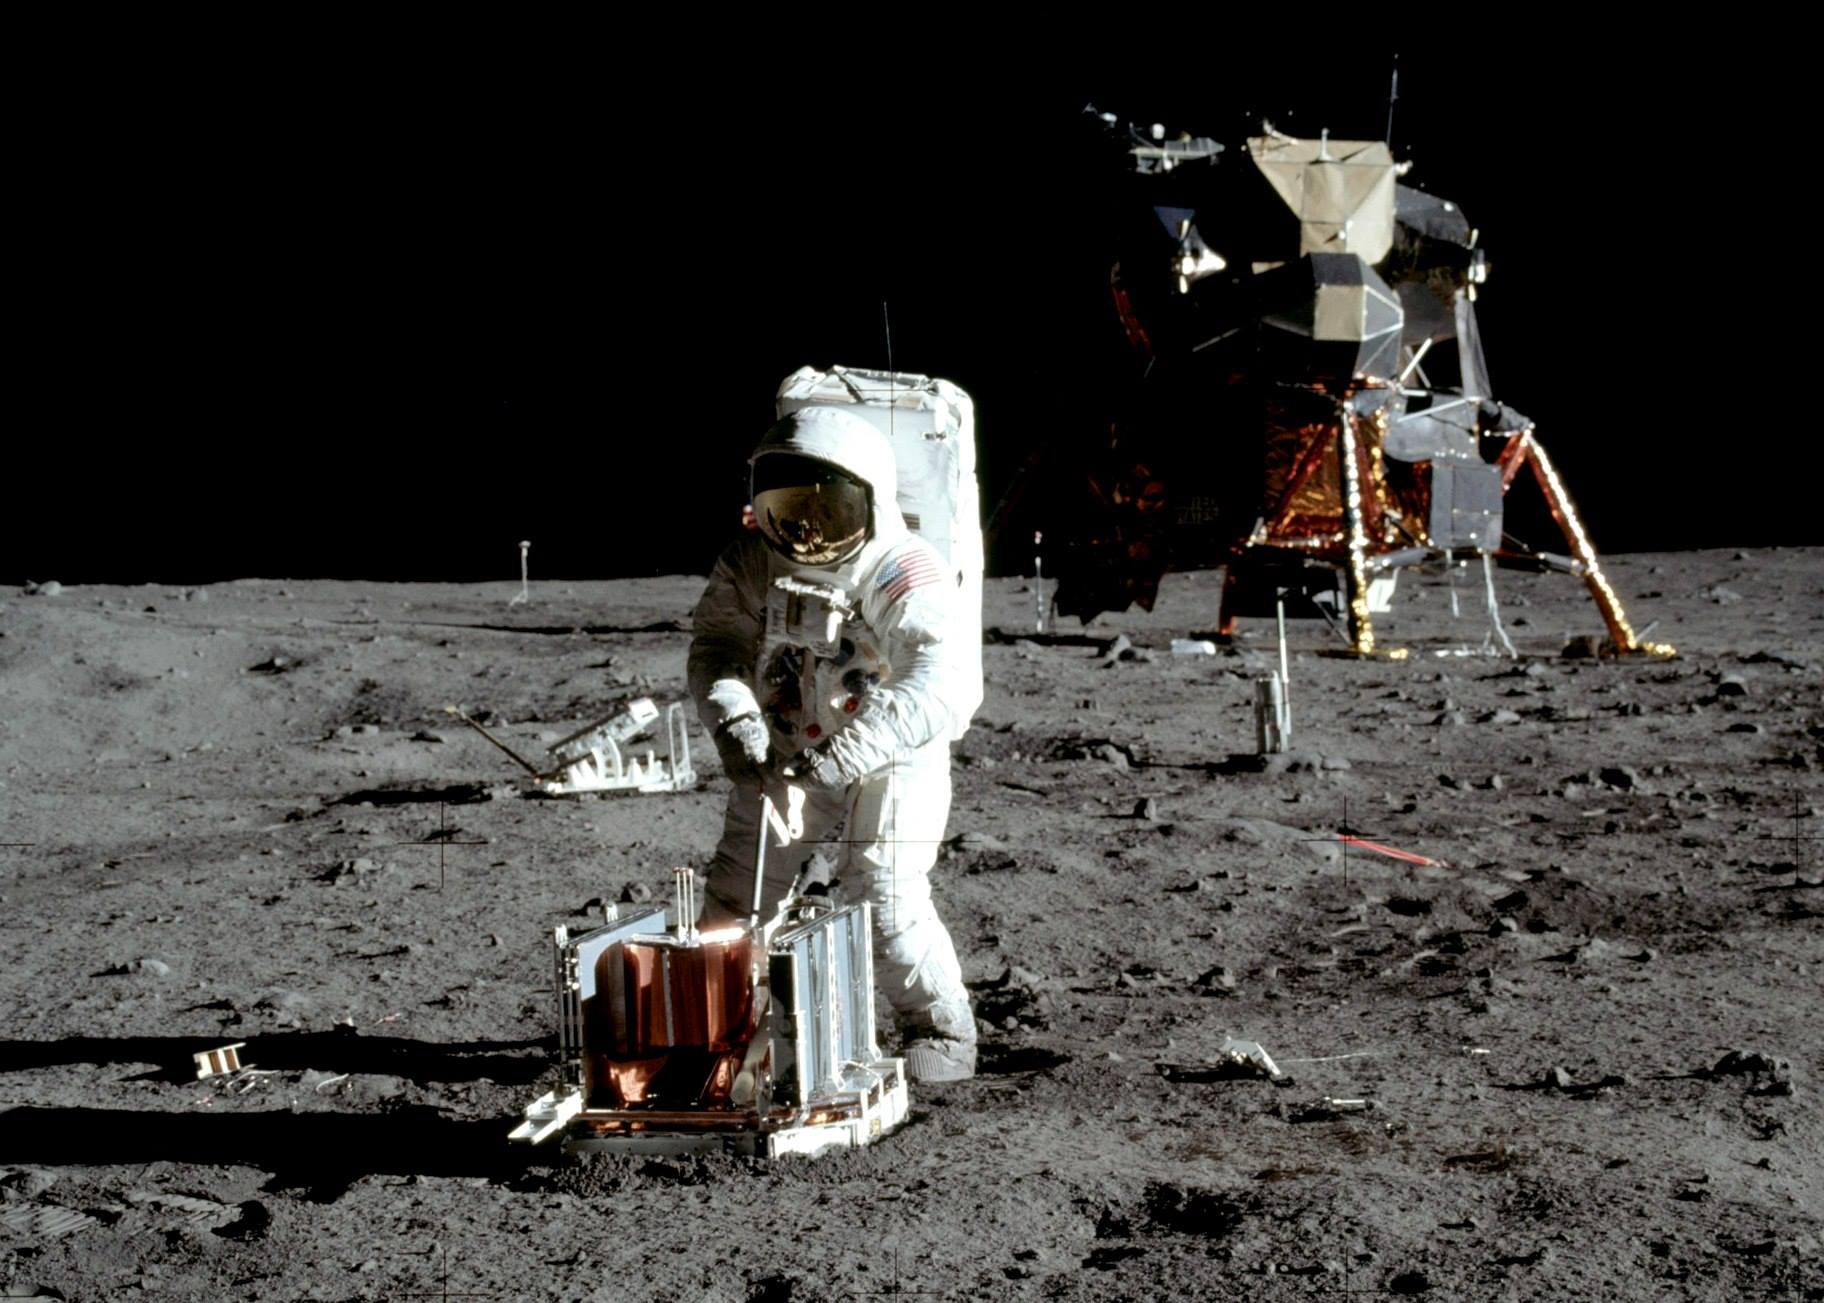 Moonwalking is also Spacewalking